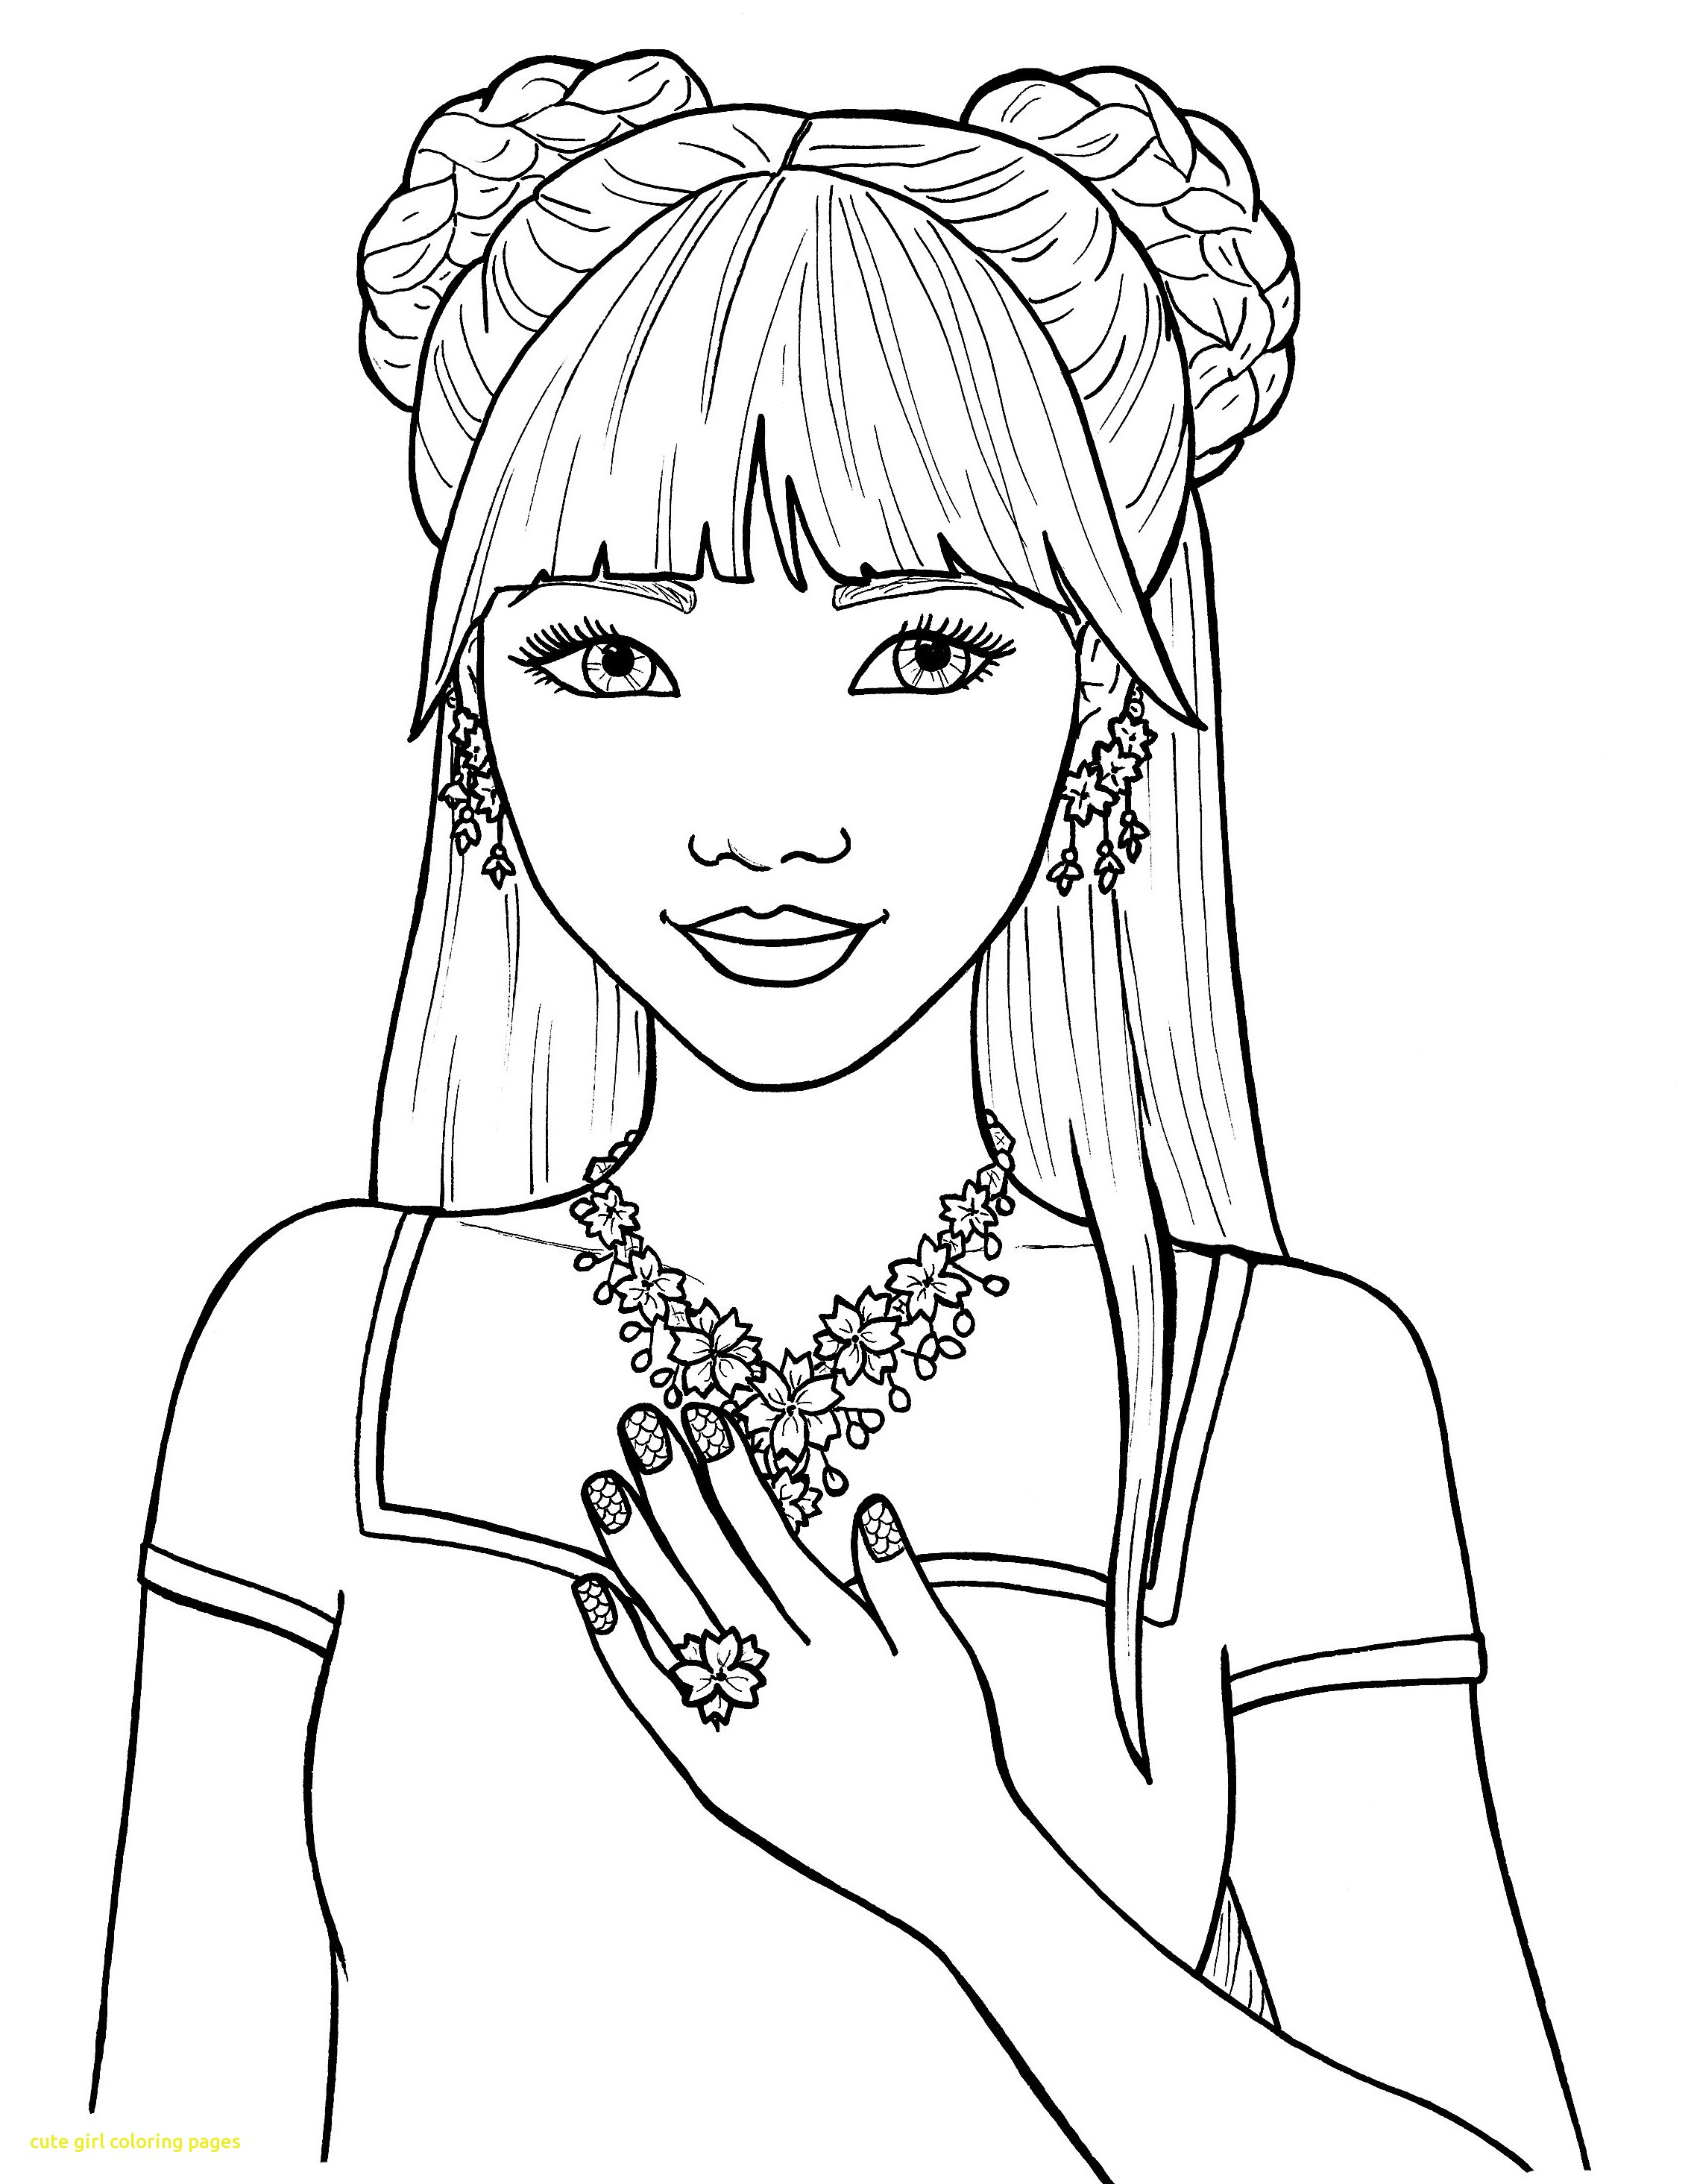 coloring pages for kids girls coloring pages for girls 6 coloring kids pages girls coloring kids for